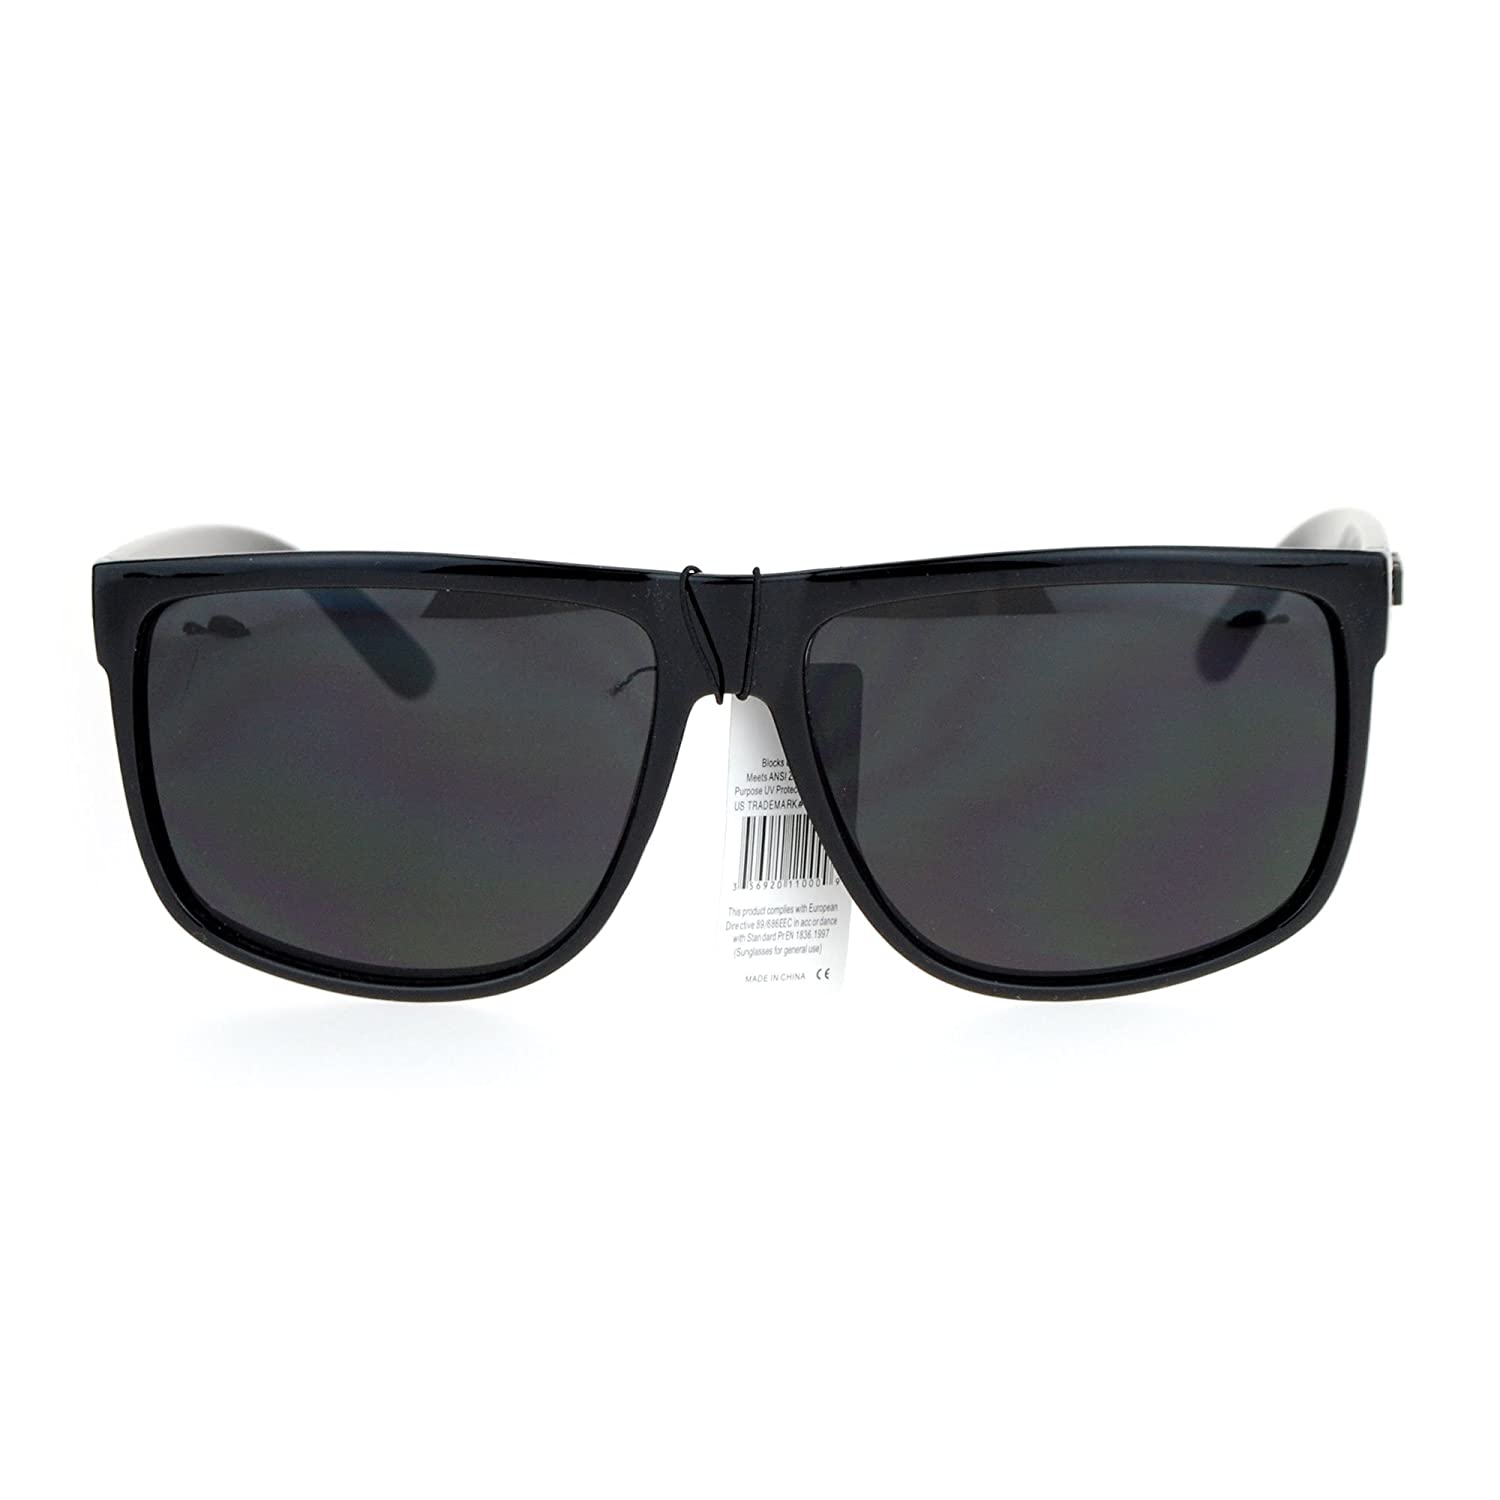 55ddd50c0 Amazon.com: KUSH Sunglasses Classic Glossy Black Square Frame Unisex  Fashion Shades UV 400: Clothing